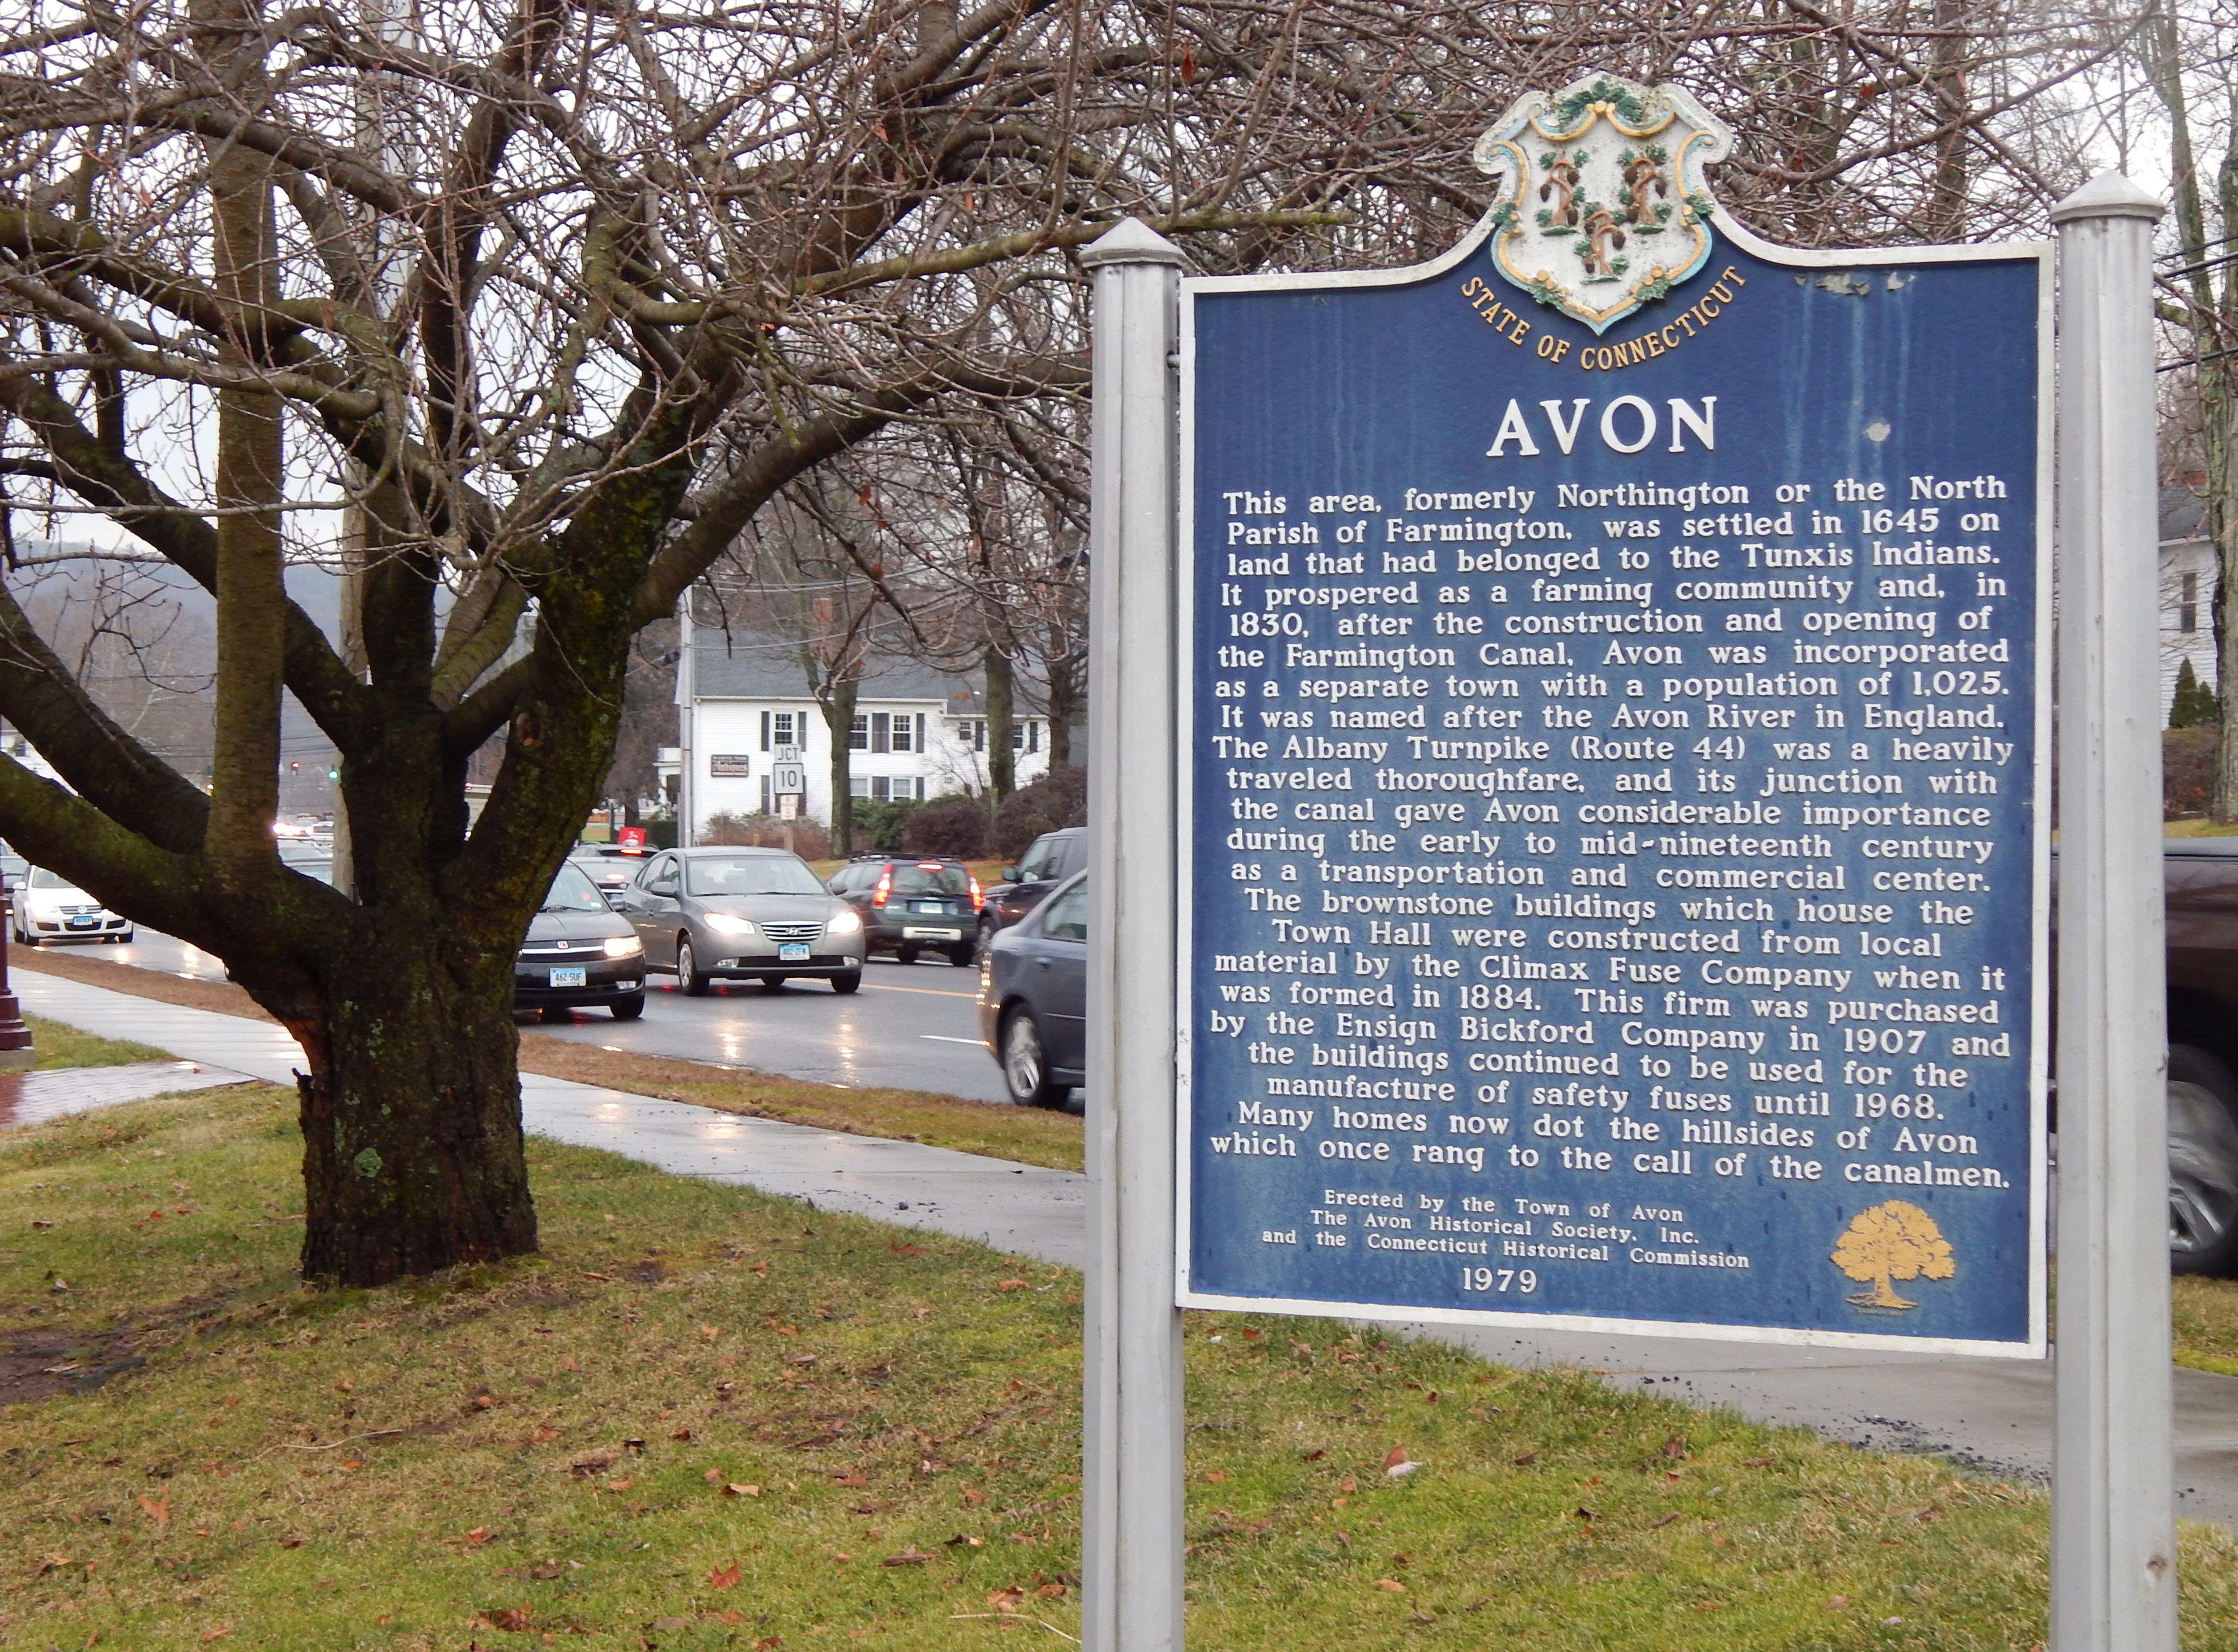 In Avon, a feeling of unease lingers as inauguration nears